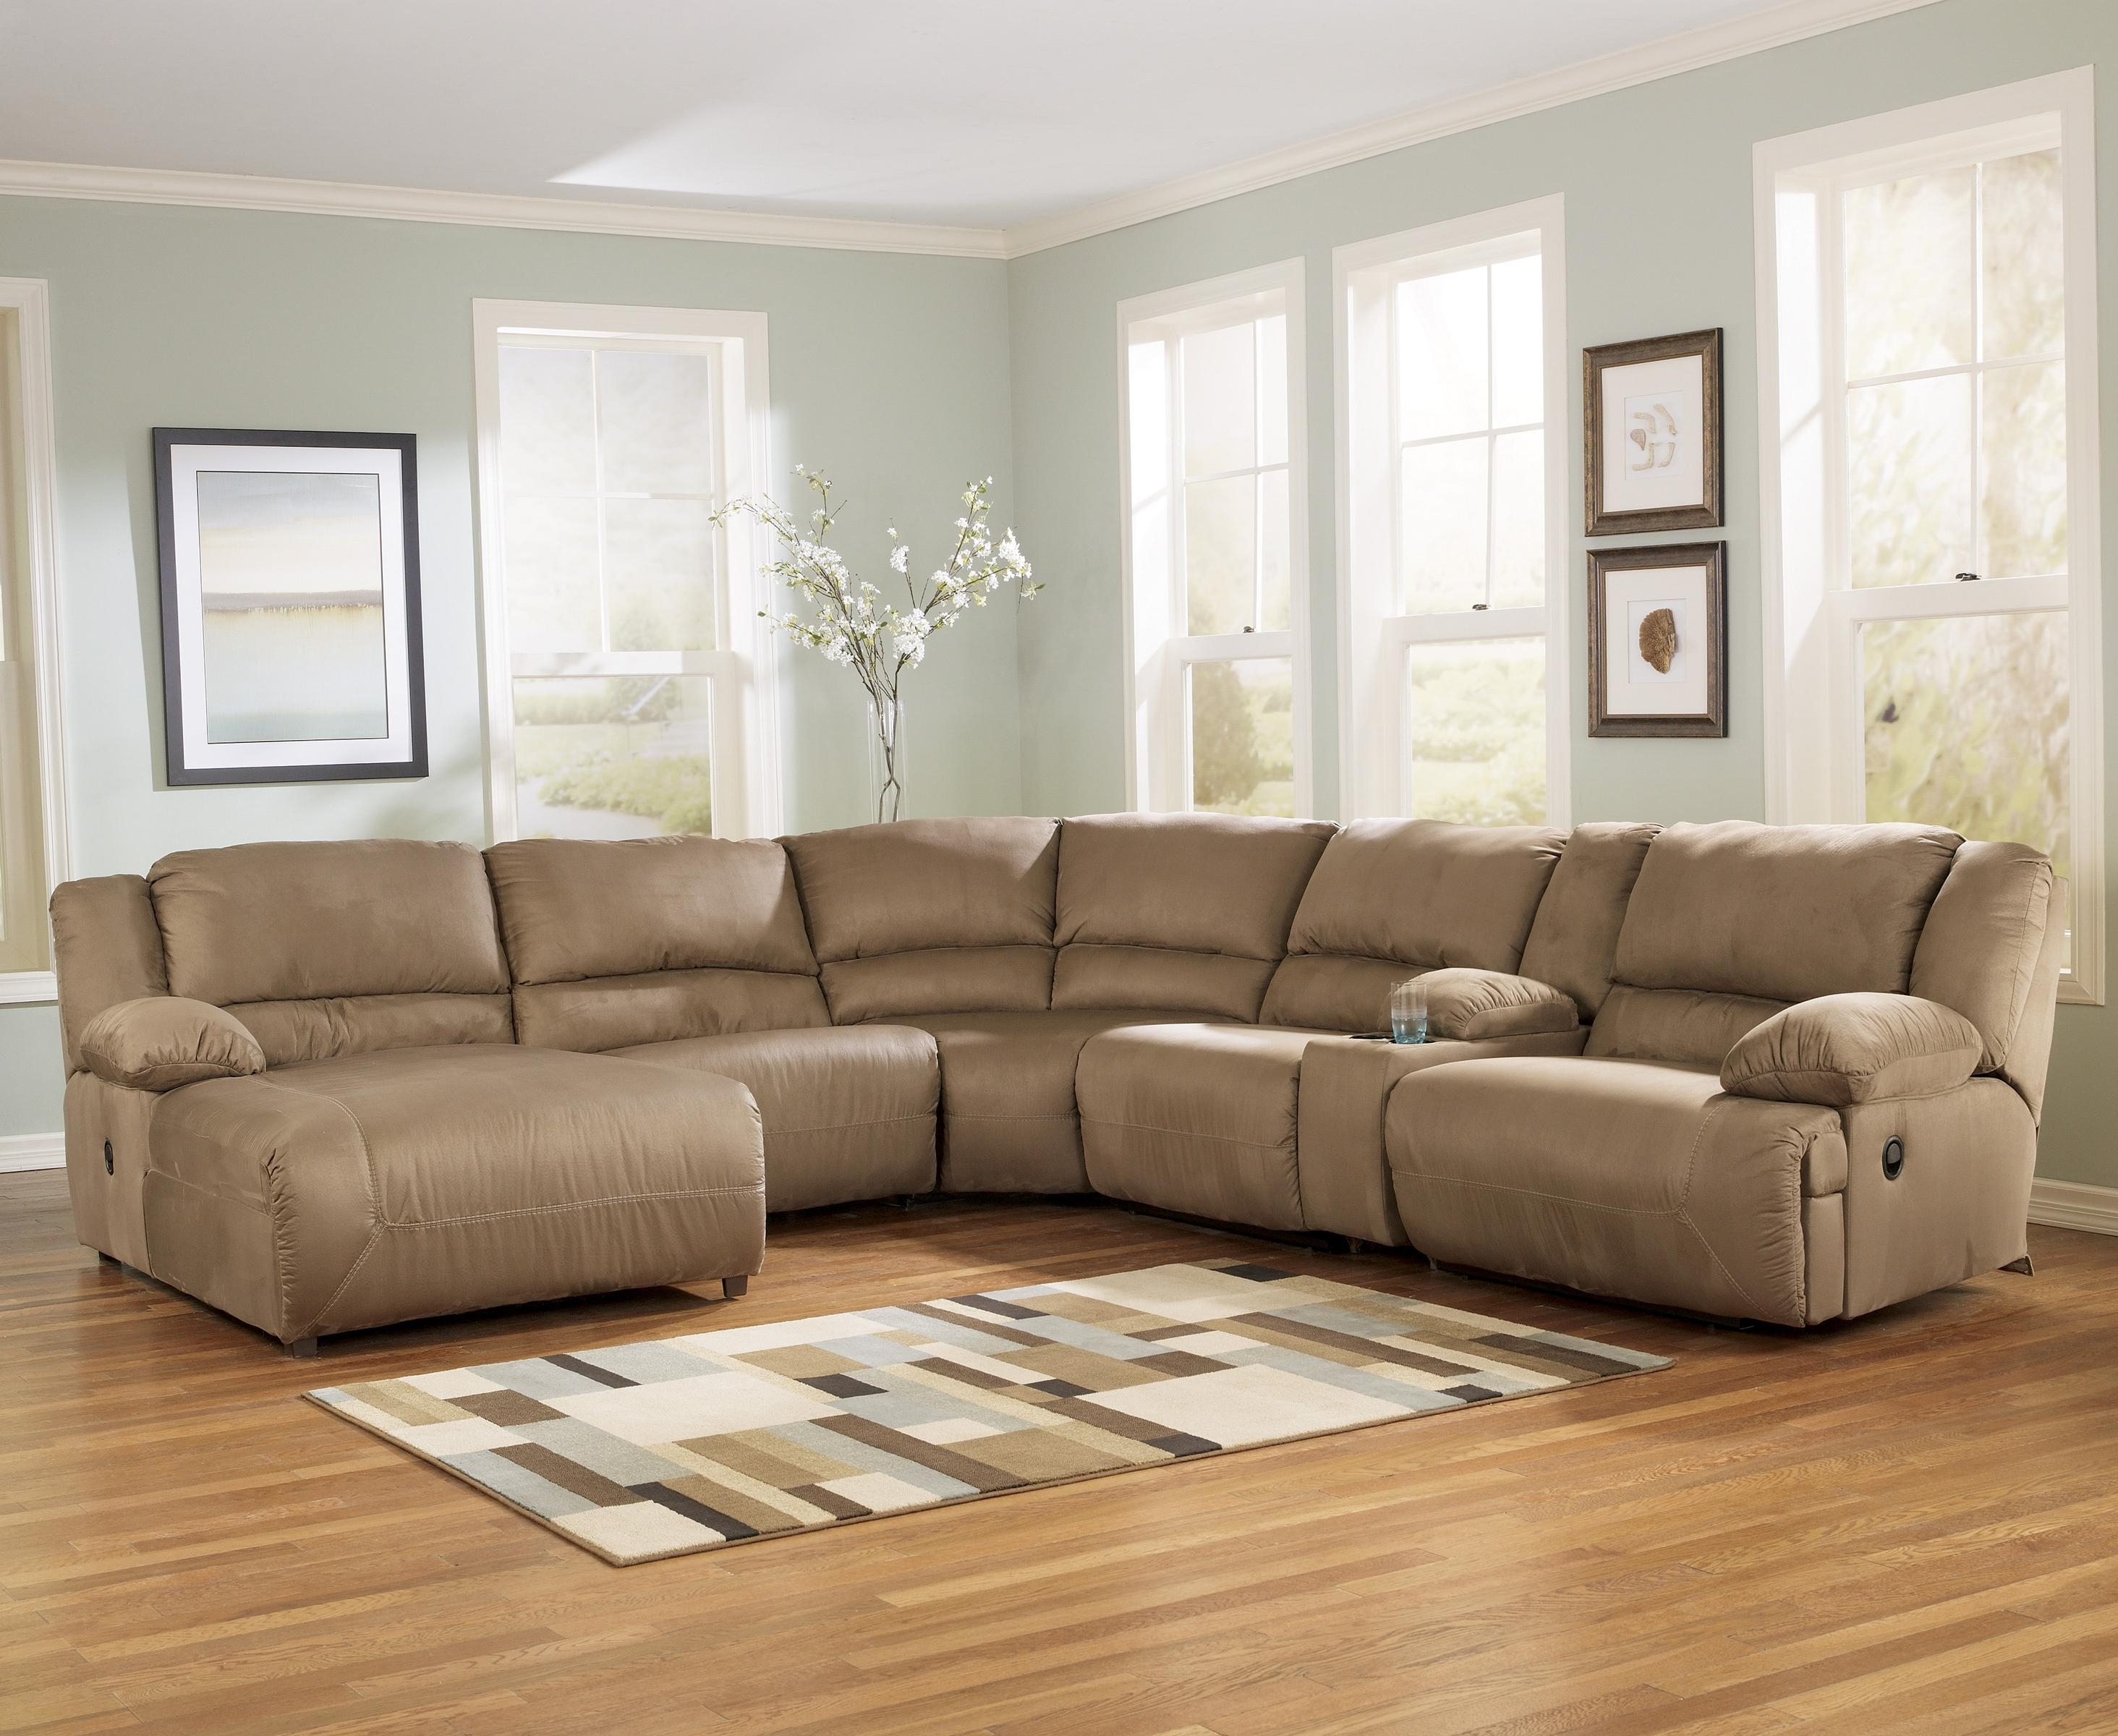 Sectional Sofas At Birmingham Al Within Well Liked Signature Designashley Hogan – Mocha 6 Piece Motion Sectional (View 17 of 20)